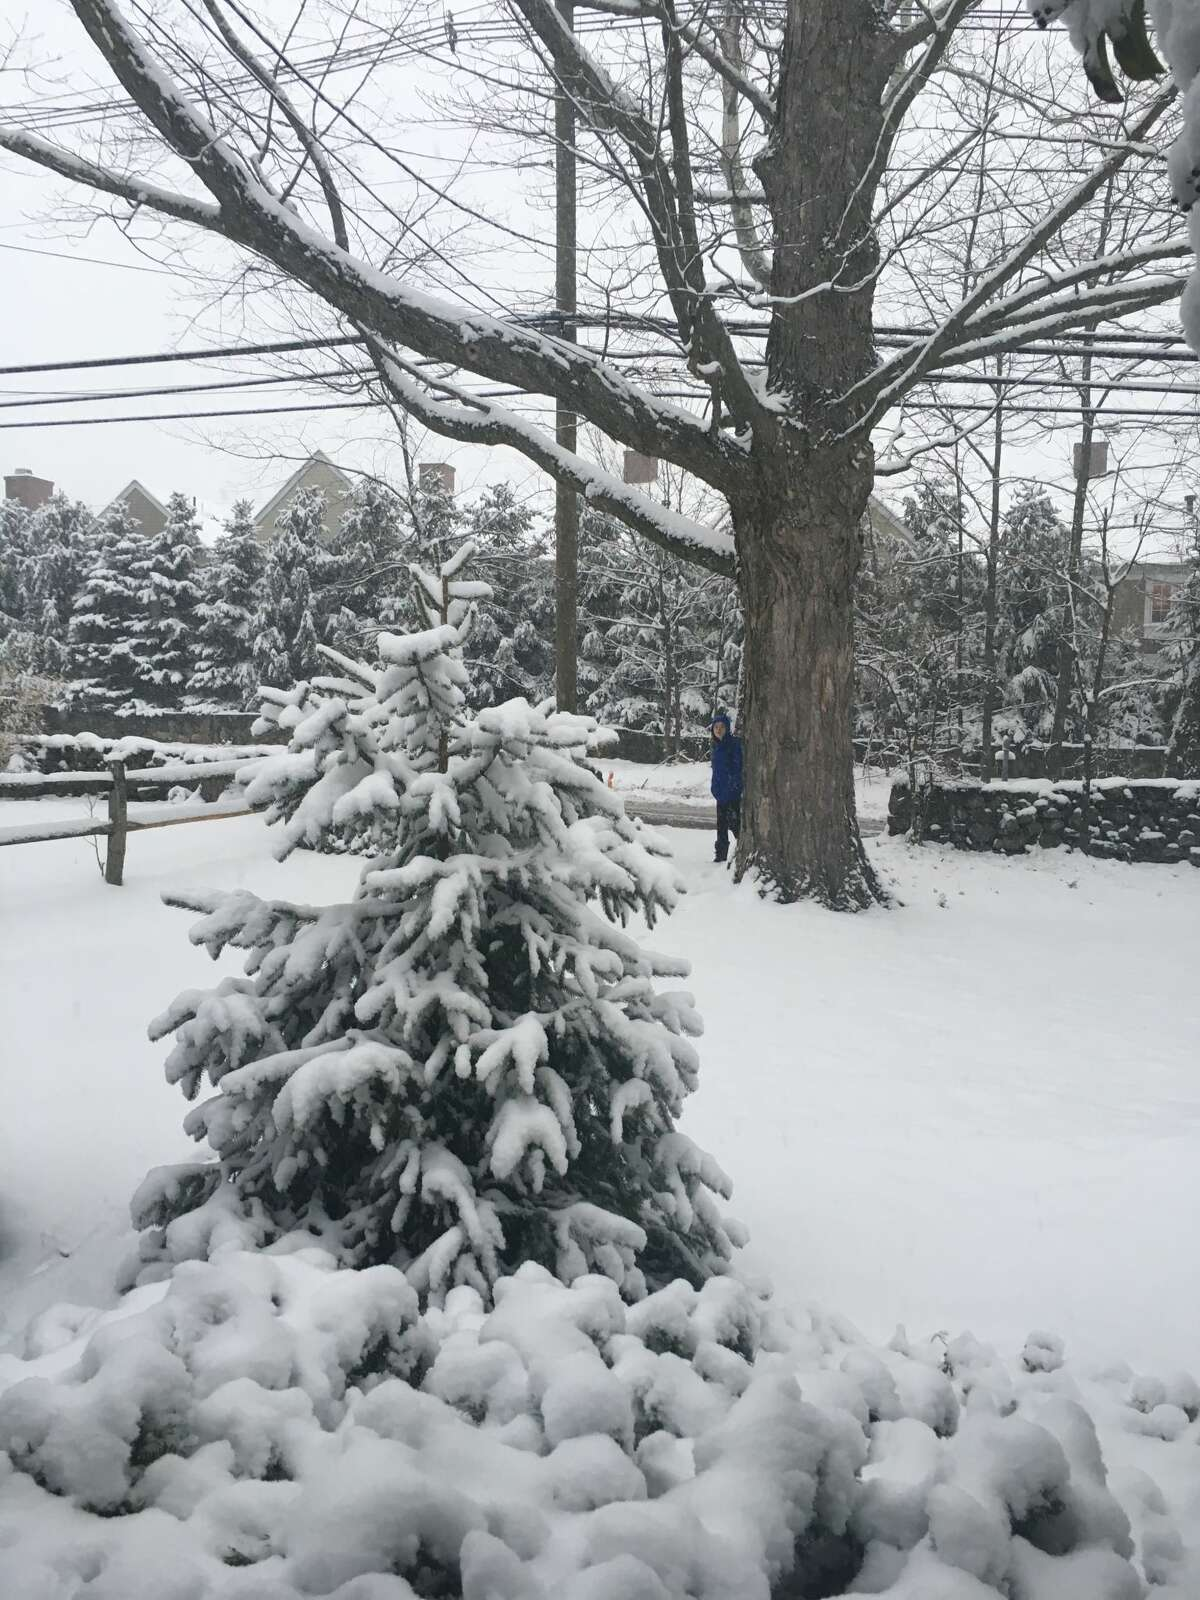 This backyard in Old Greenwich, Conn. was blanketed in snow during an April 2, 2018 snow storm.